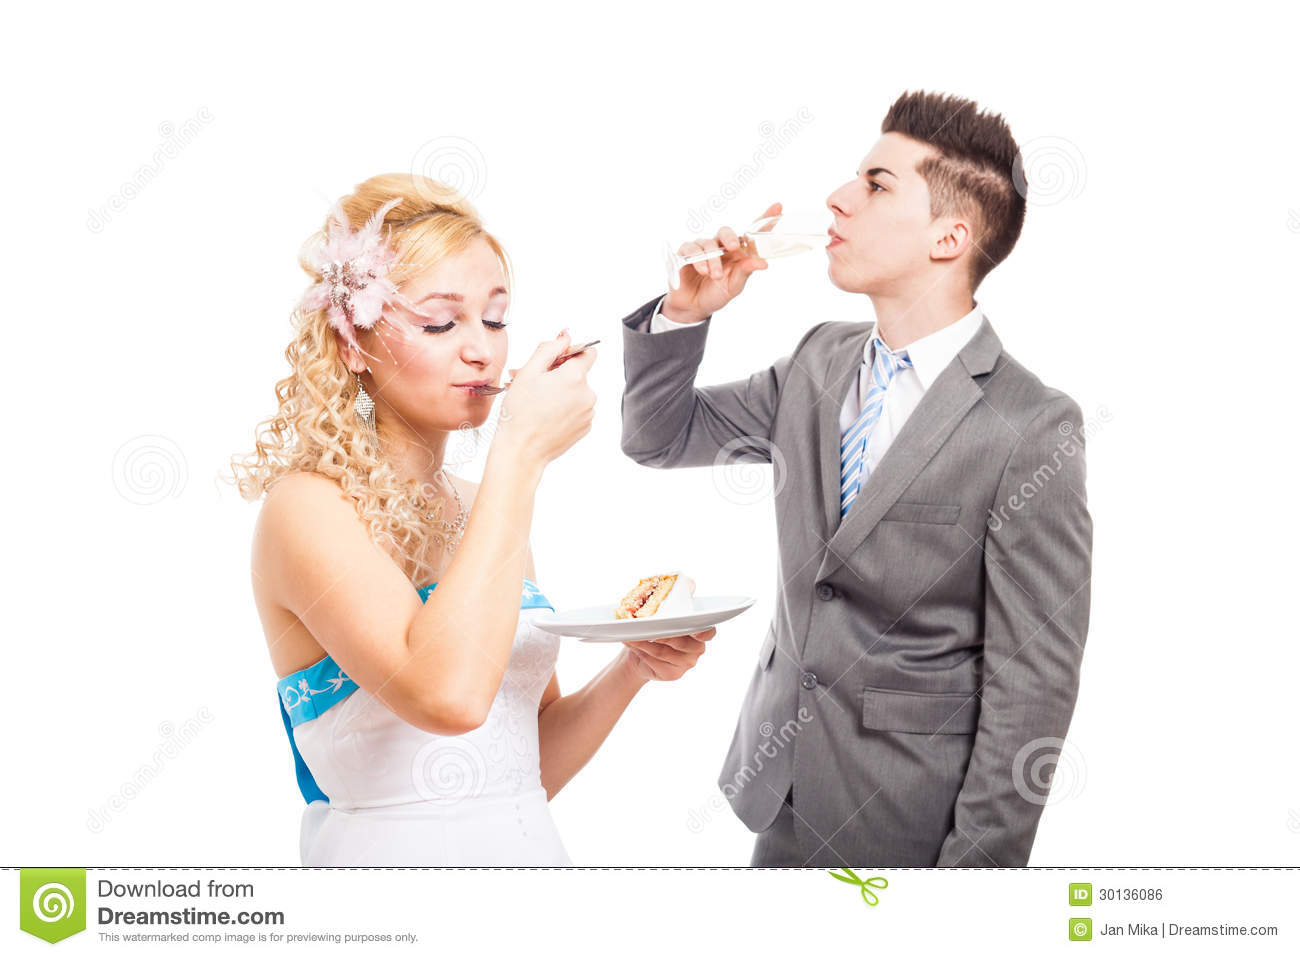 Eating Wedding Cake